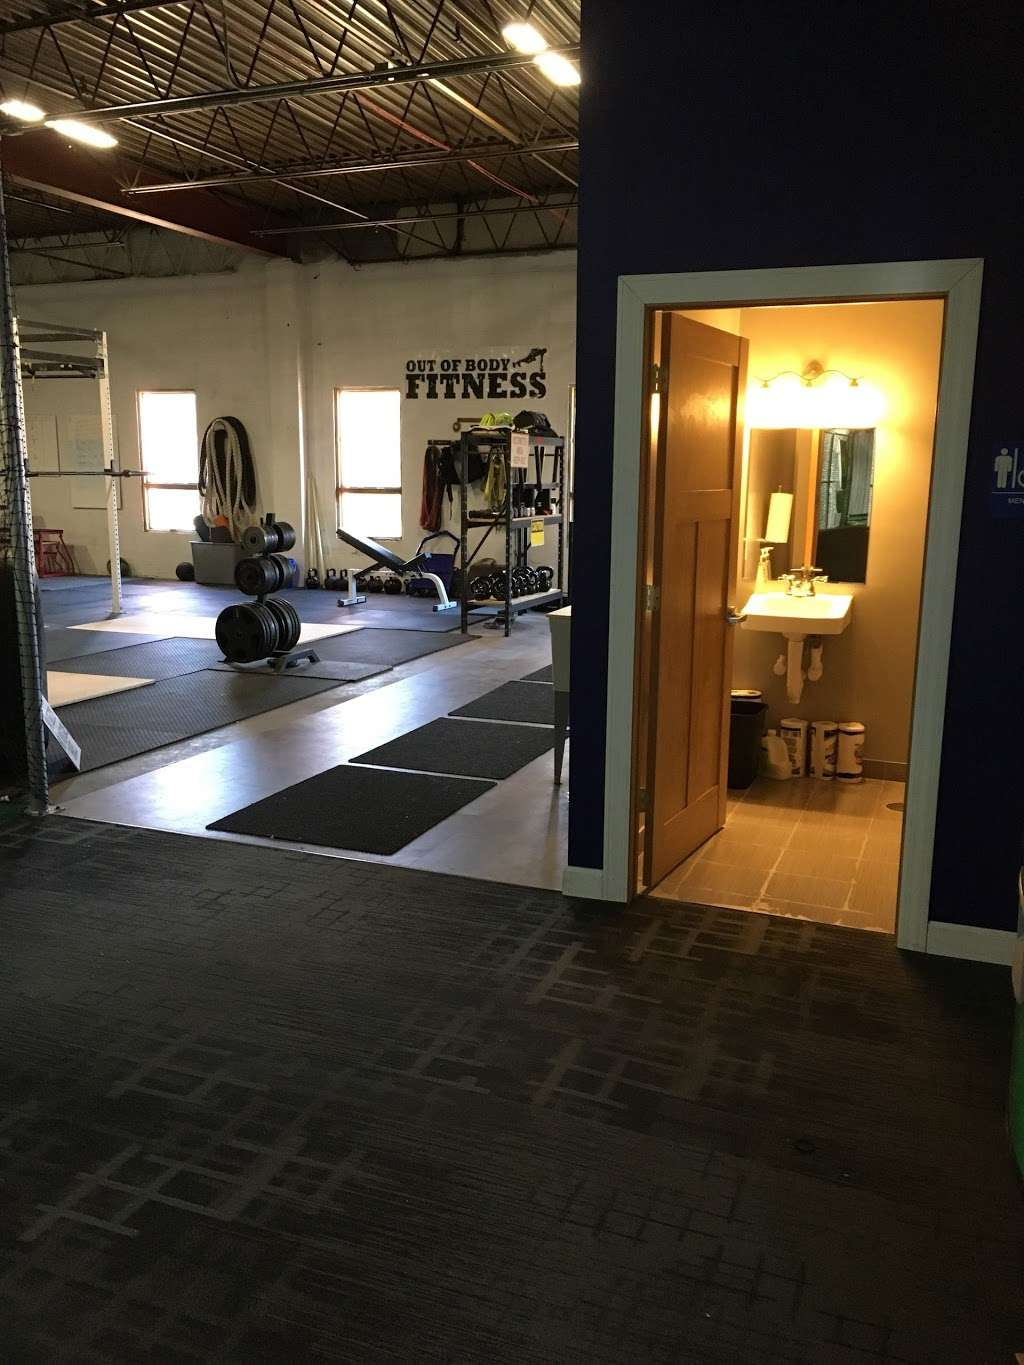 Out of Body Fitness - gym  | Photo 10 of 10 | Address: 303 N 4th St # B, St. Charles, IL 60174, USA | Phone: (630) 440-7993